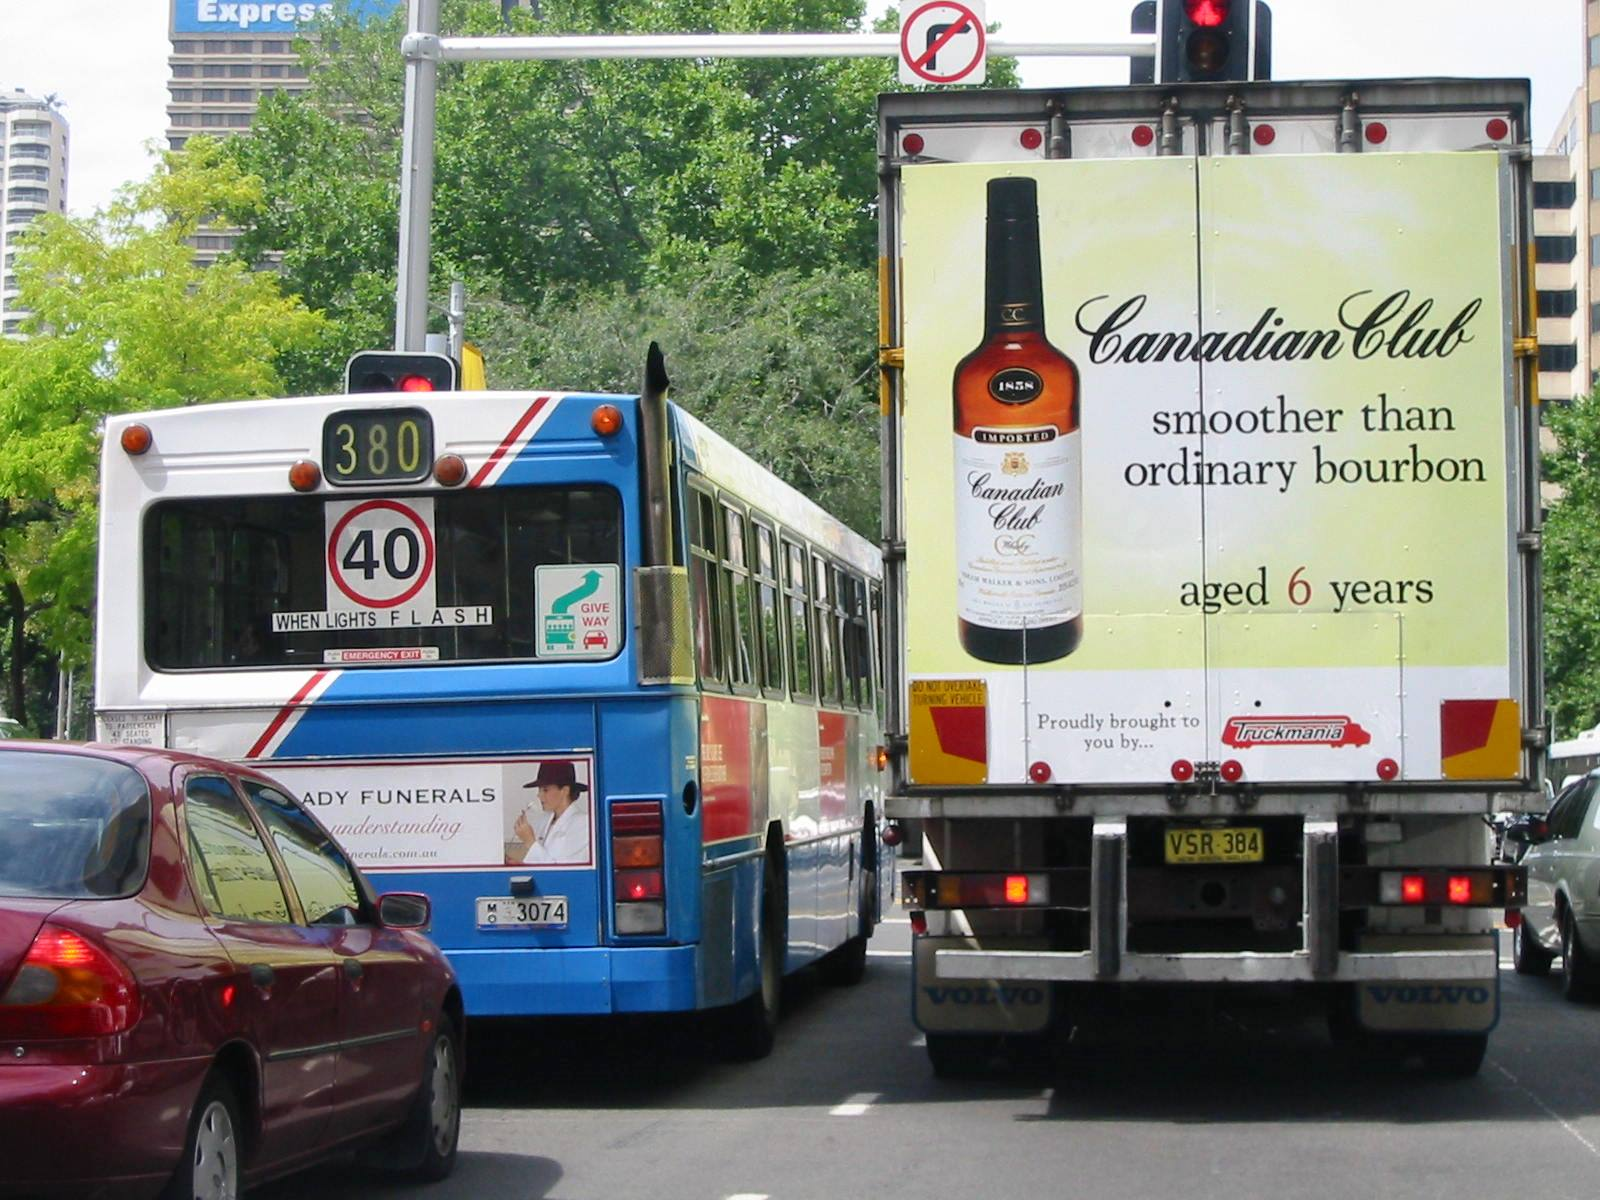 Truck advertising. TruckSide advertising. Fleet graphics. Vehicle Wraps. Canadian Club (CC) A Smooth Character Takes Time/Smoother Than Ordinary Bourbon campaign. Full TrackBack. Rigid tautliner.York Street Sydney southbound. Adjacent partially obscured bus back.